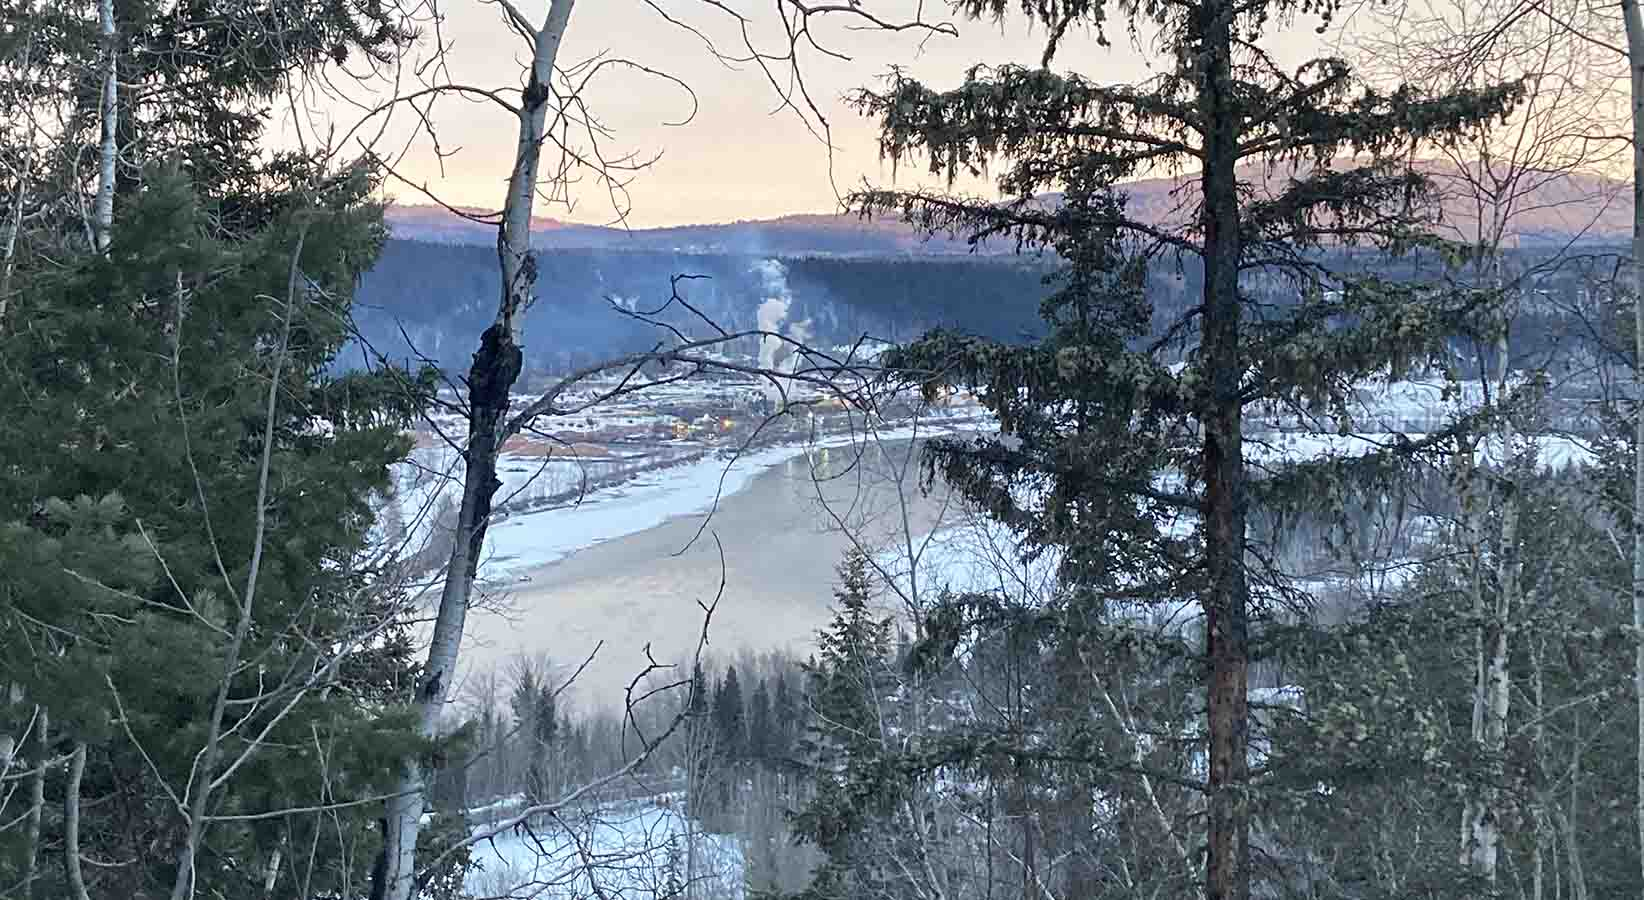 Quesnel, British Columbia seen through the trees